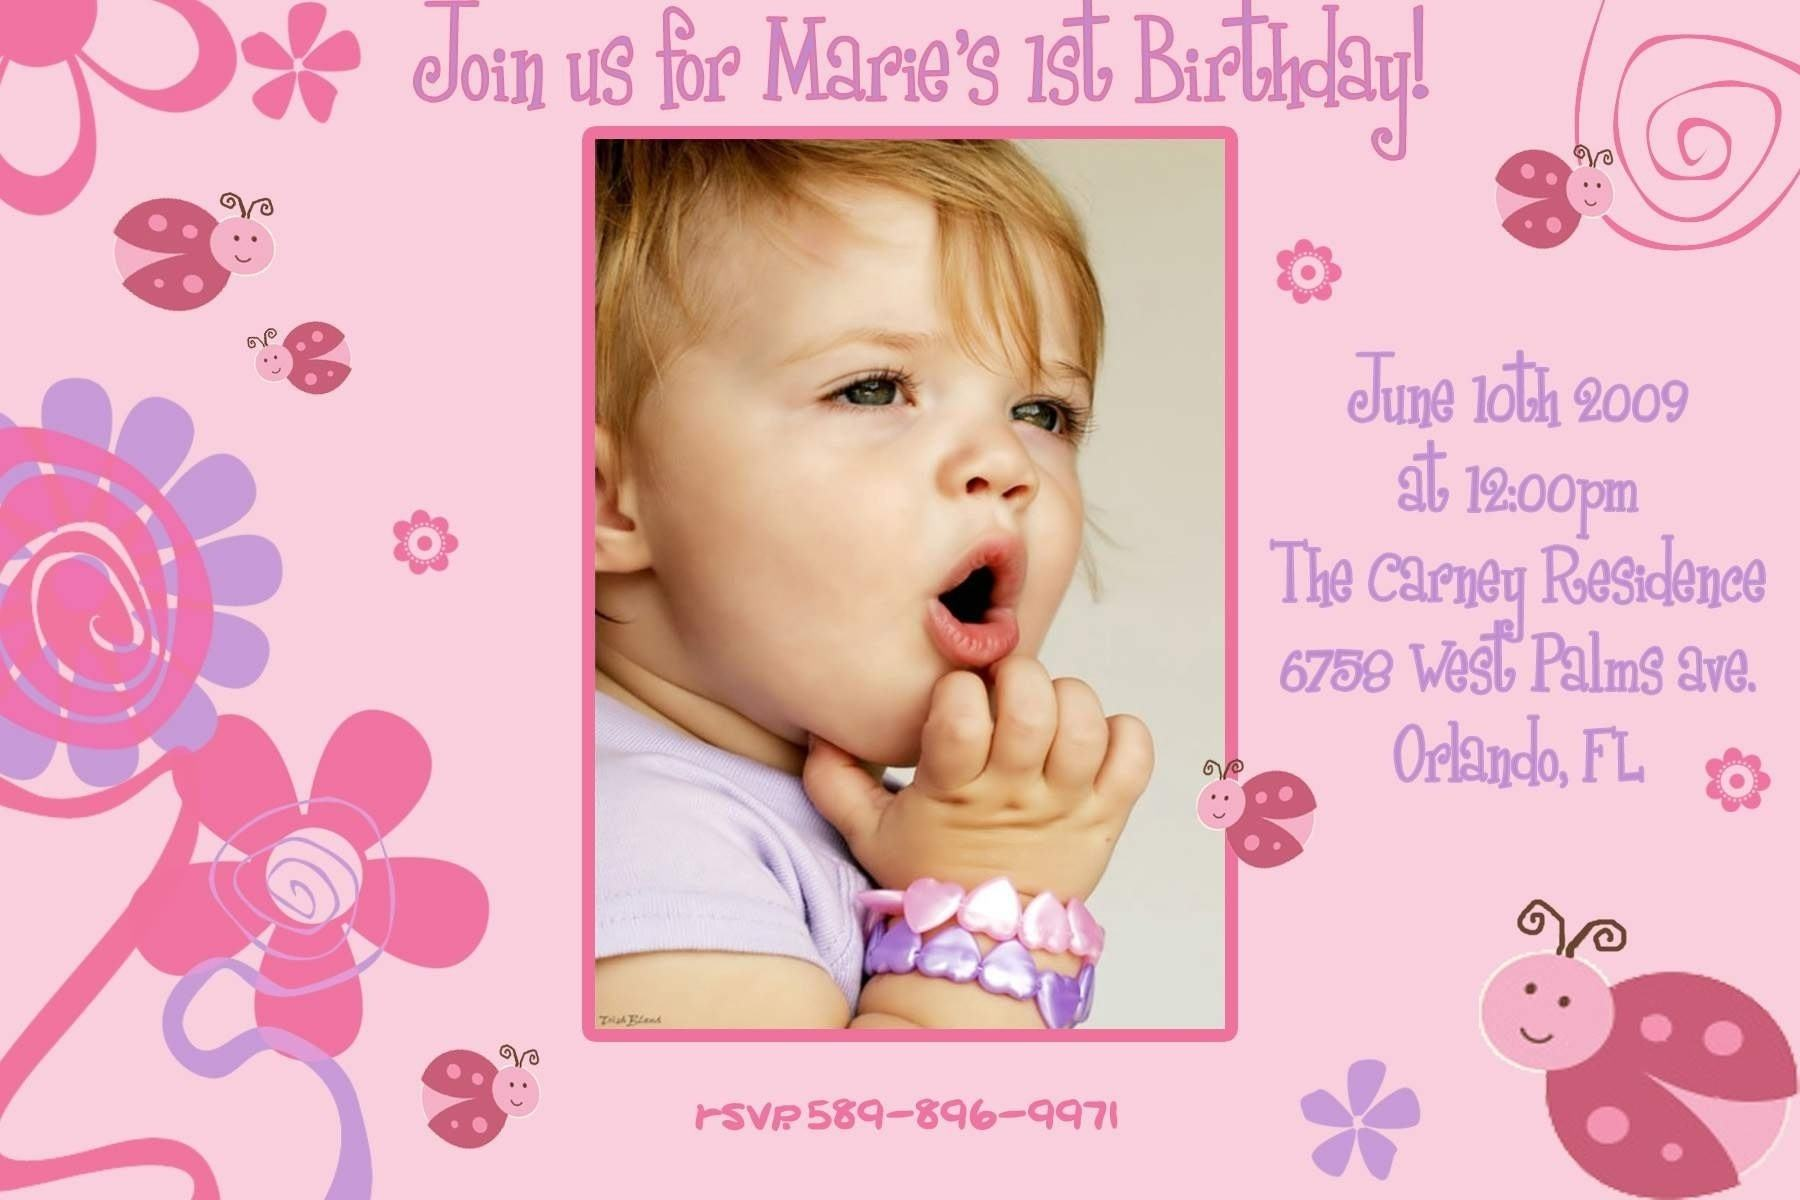 download birthday invitation card template ; 1st-birthday-invitations-templates-free-best-sample-1st-birthday-invitation-card-template-free-download-of-1st-birthday-invitations-templates-free